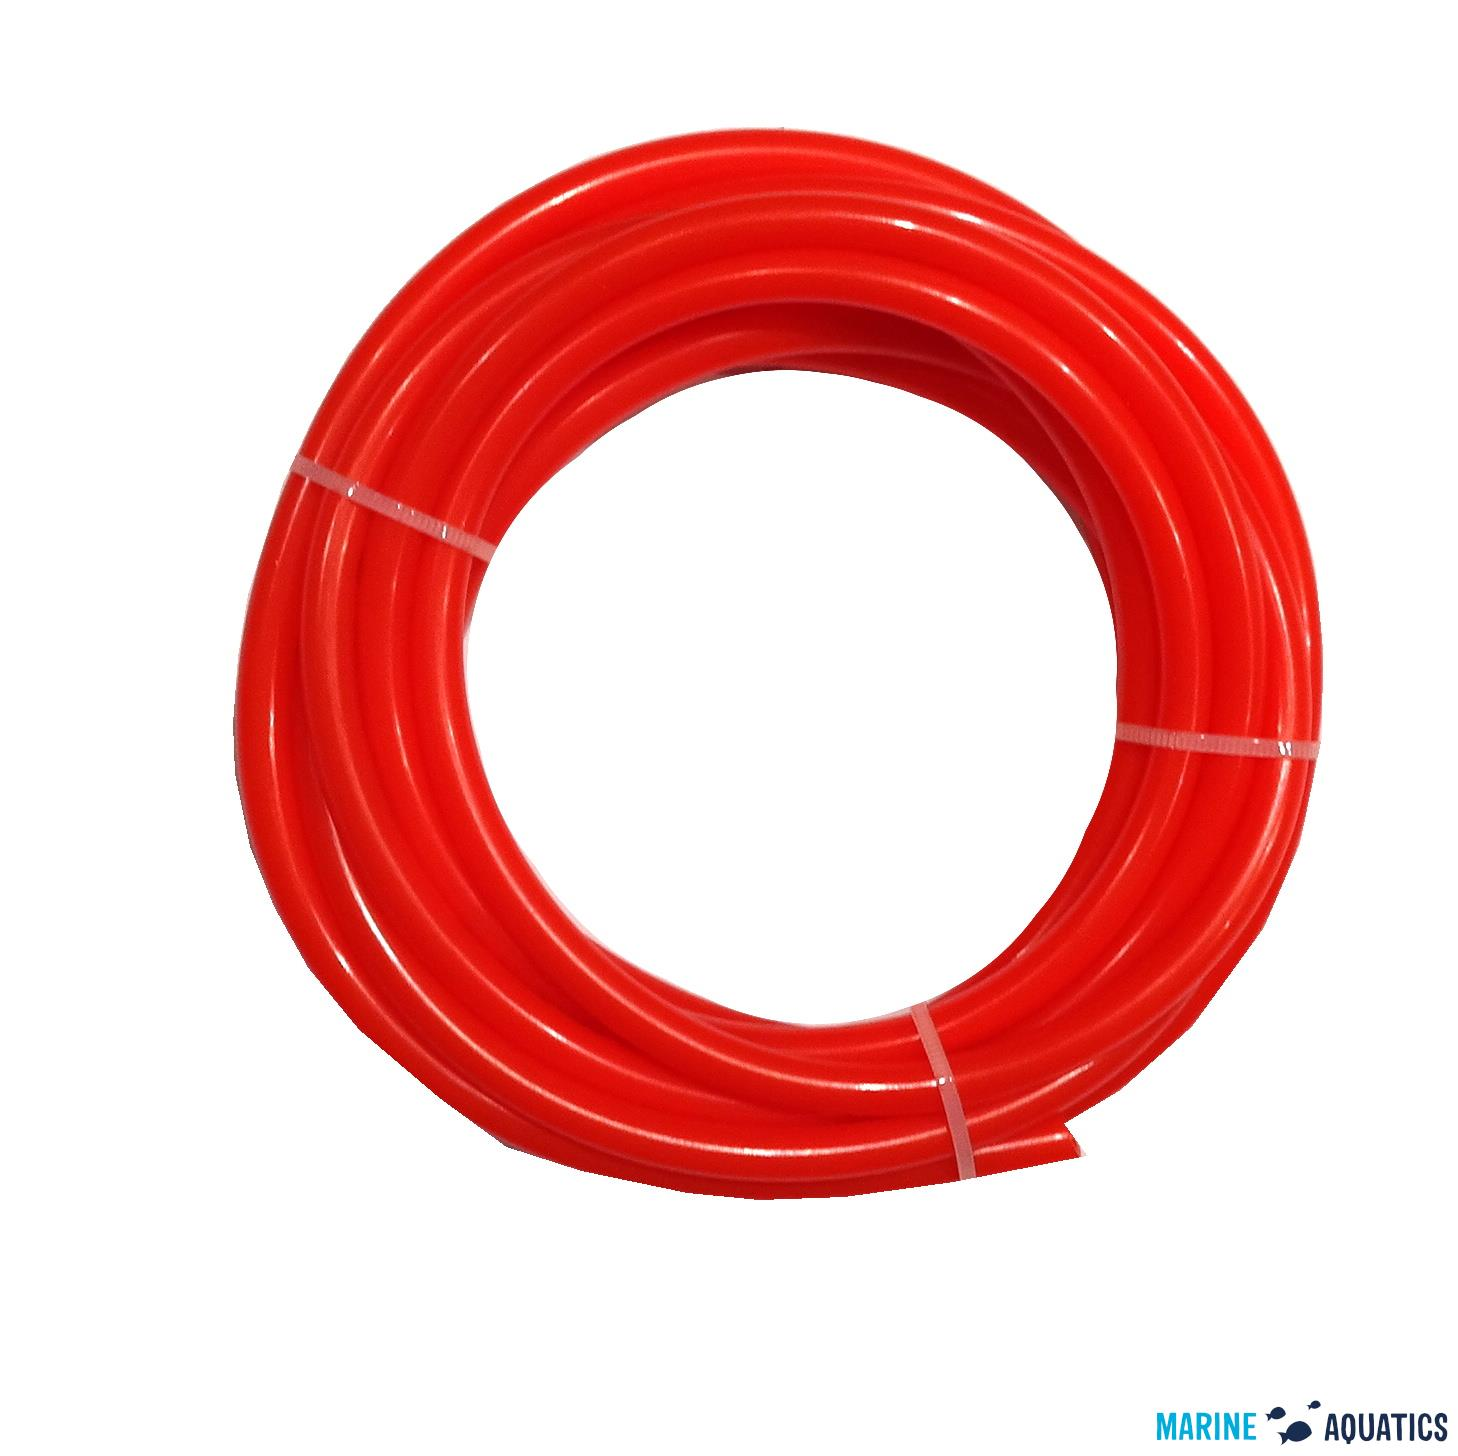 LLPDE tube/Red 1/4OD / 3m